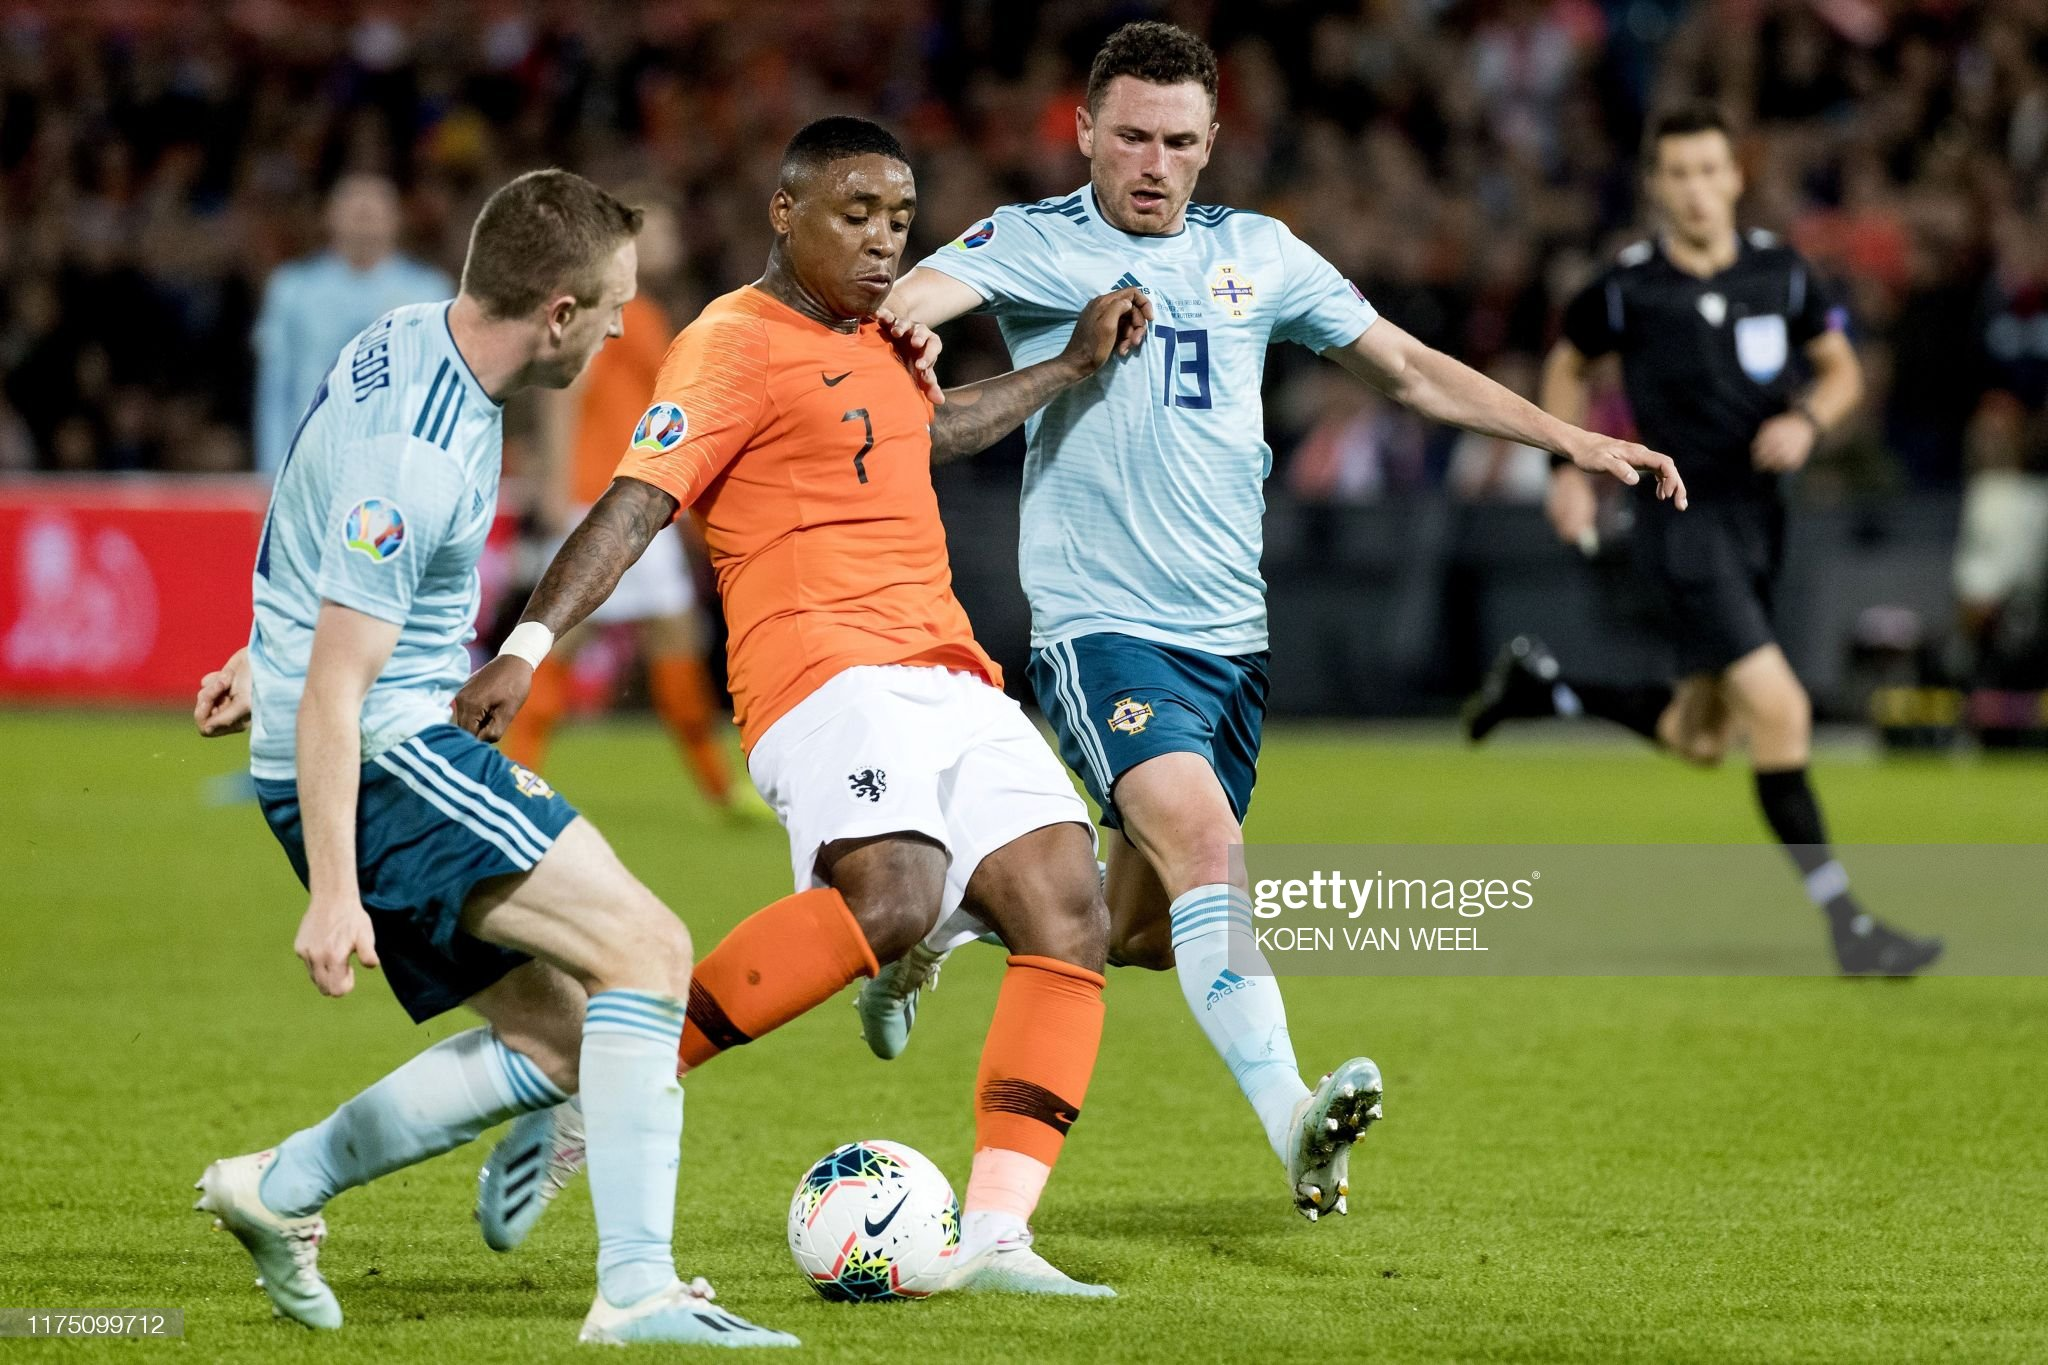 Northern Ireland v Netherlands preview, prediction and odds